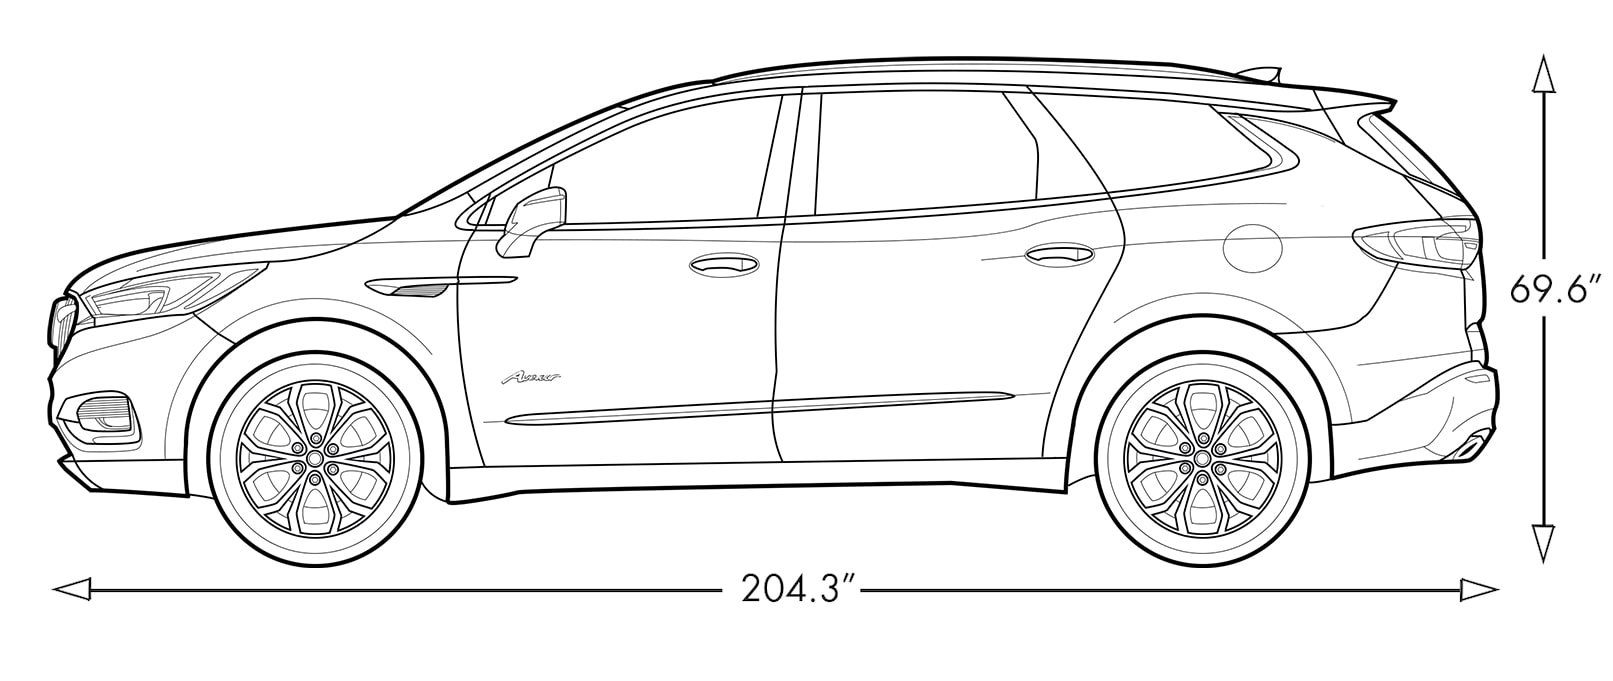 Diagram image of the 2018 Buick Enclave Avenir mid-size luxury SUV.